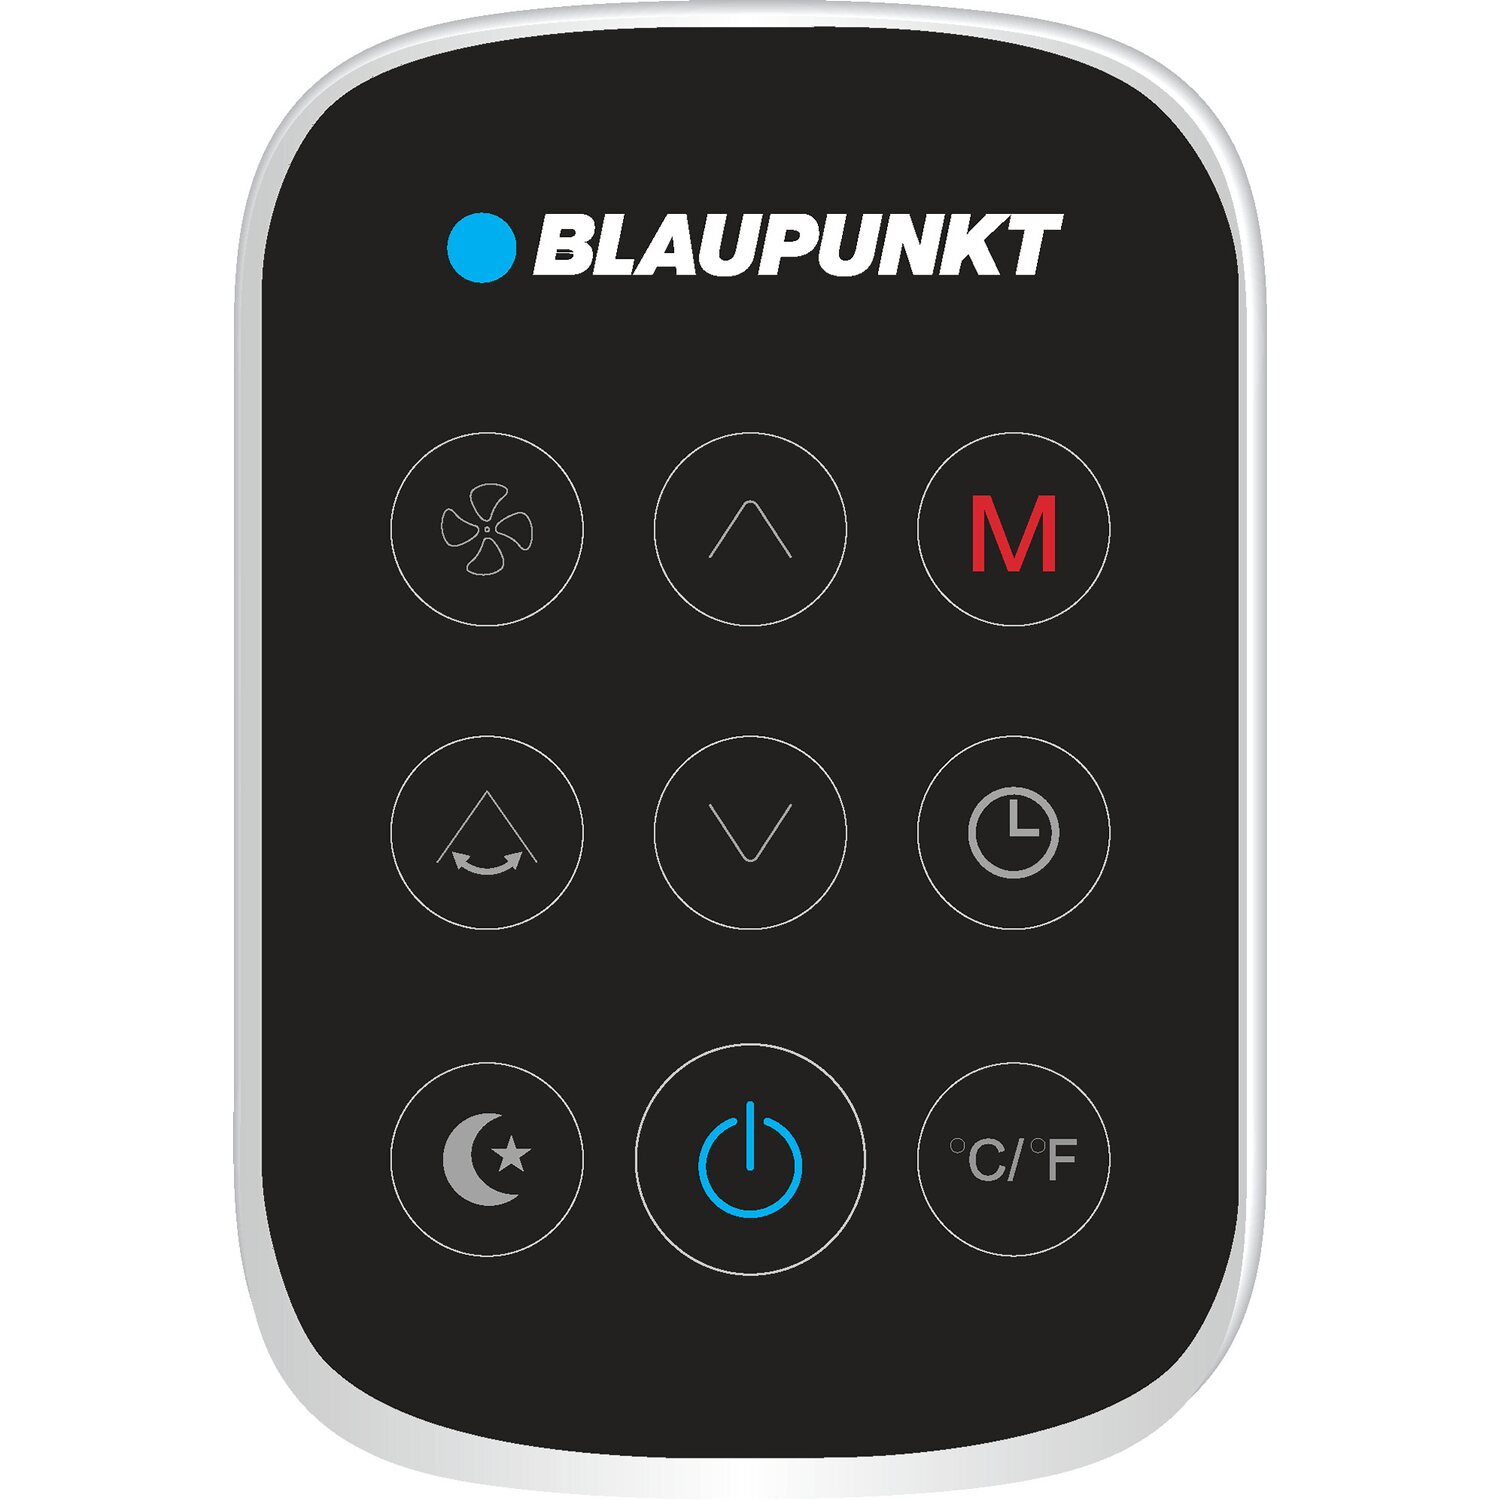 blaupunkt mobiles klimager t moby blue 1012b btu. Black Bedroom Furniture Sets. Home Design Ideas